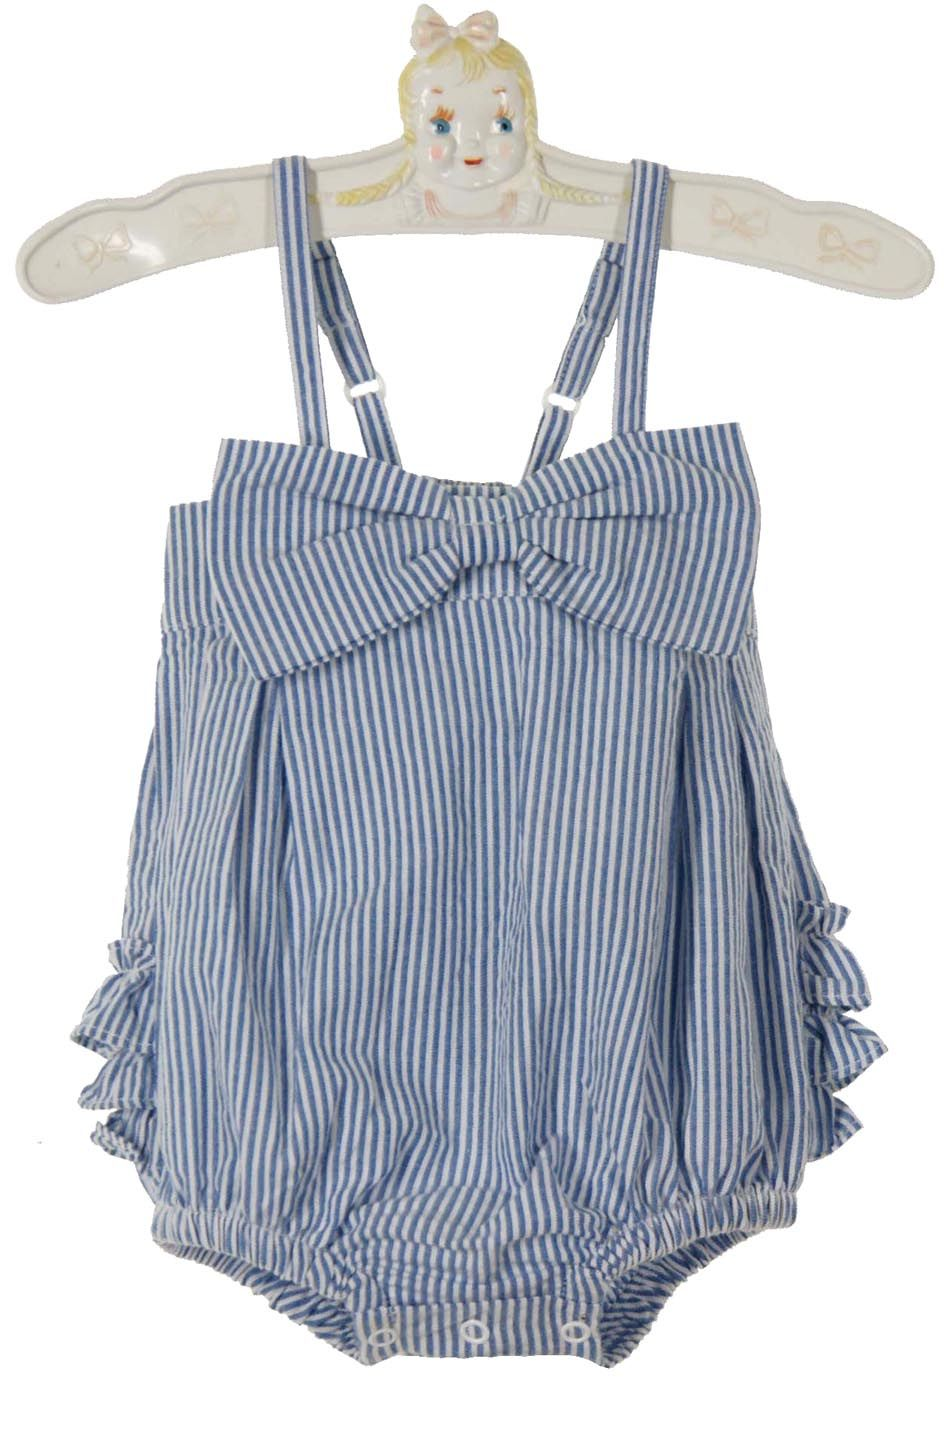 772a3e95787 NEW Ruffle Butts Vintage Style Blue Striped Sunsuit  30.00